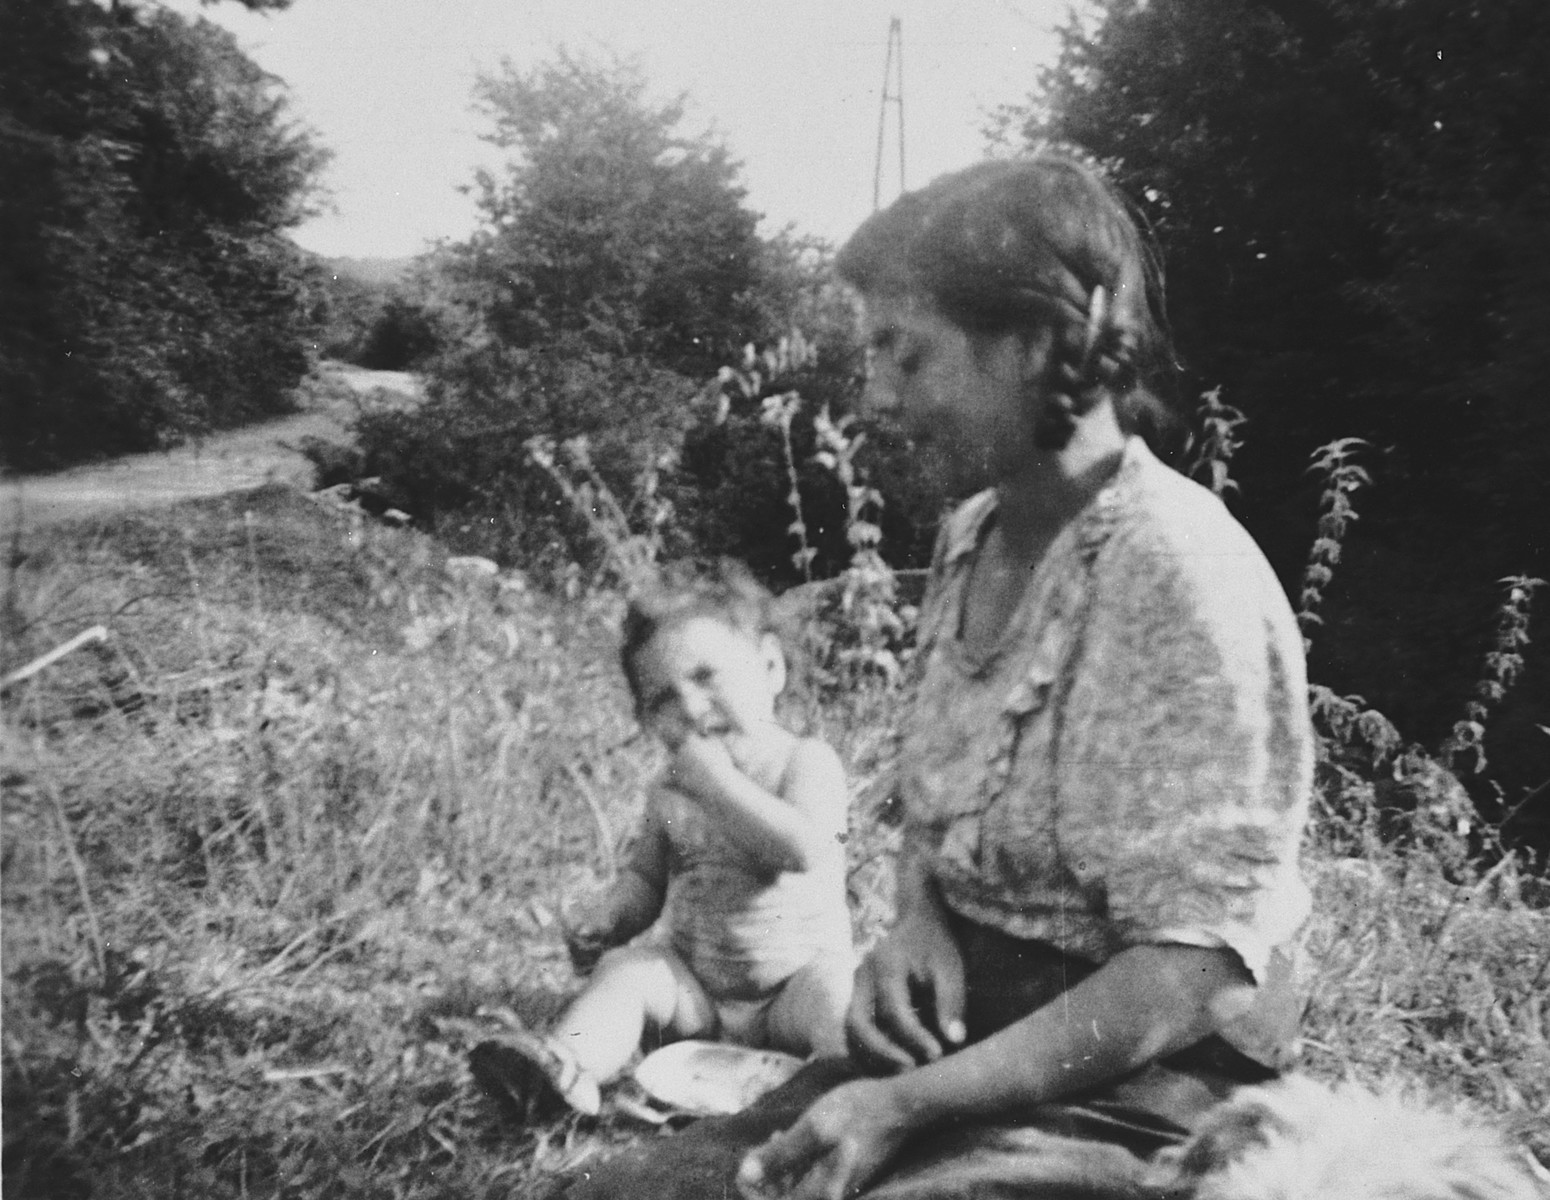 A young Roma (Gypsy) woman and child seated on the grass in wartime Belgium.